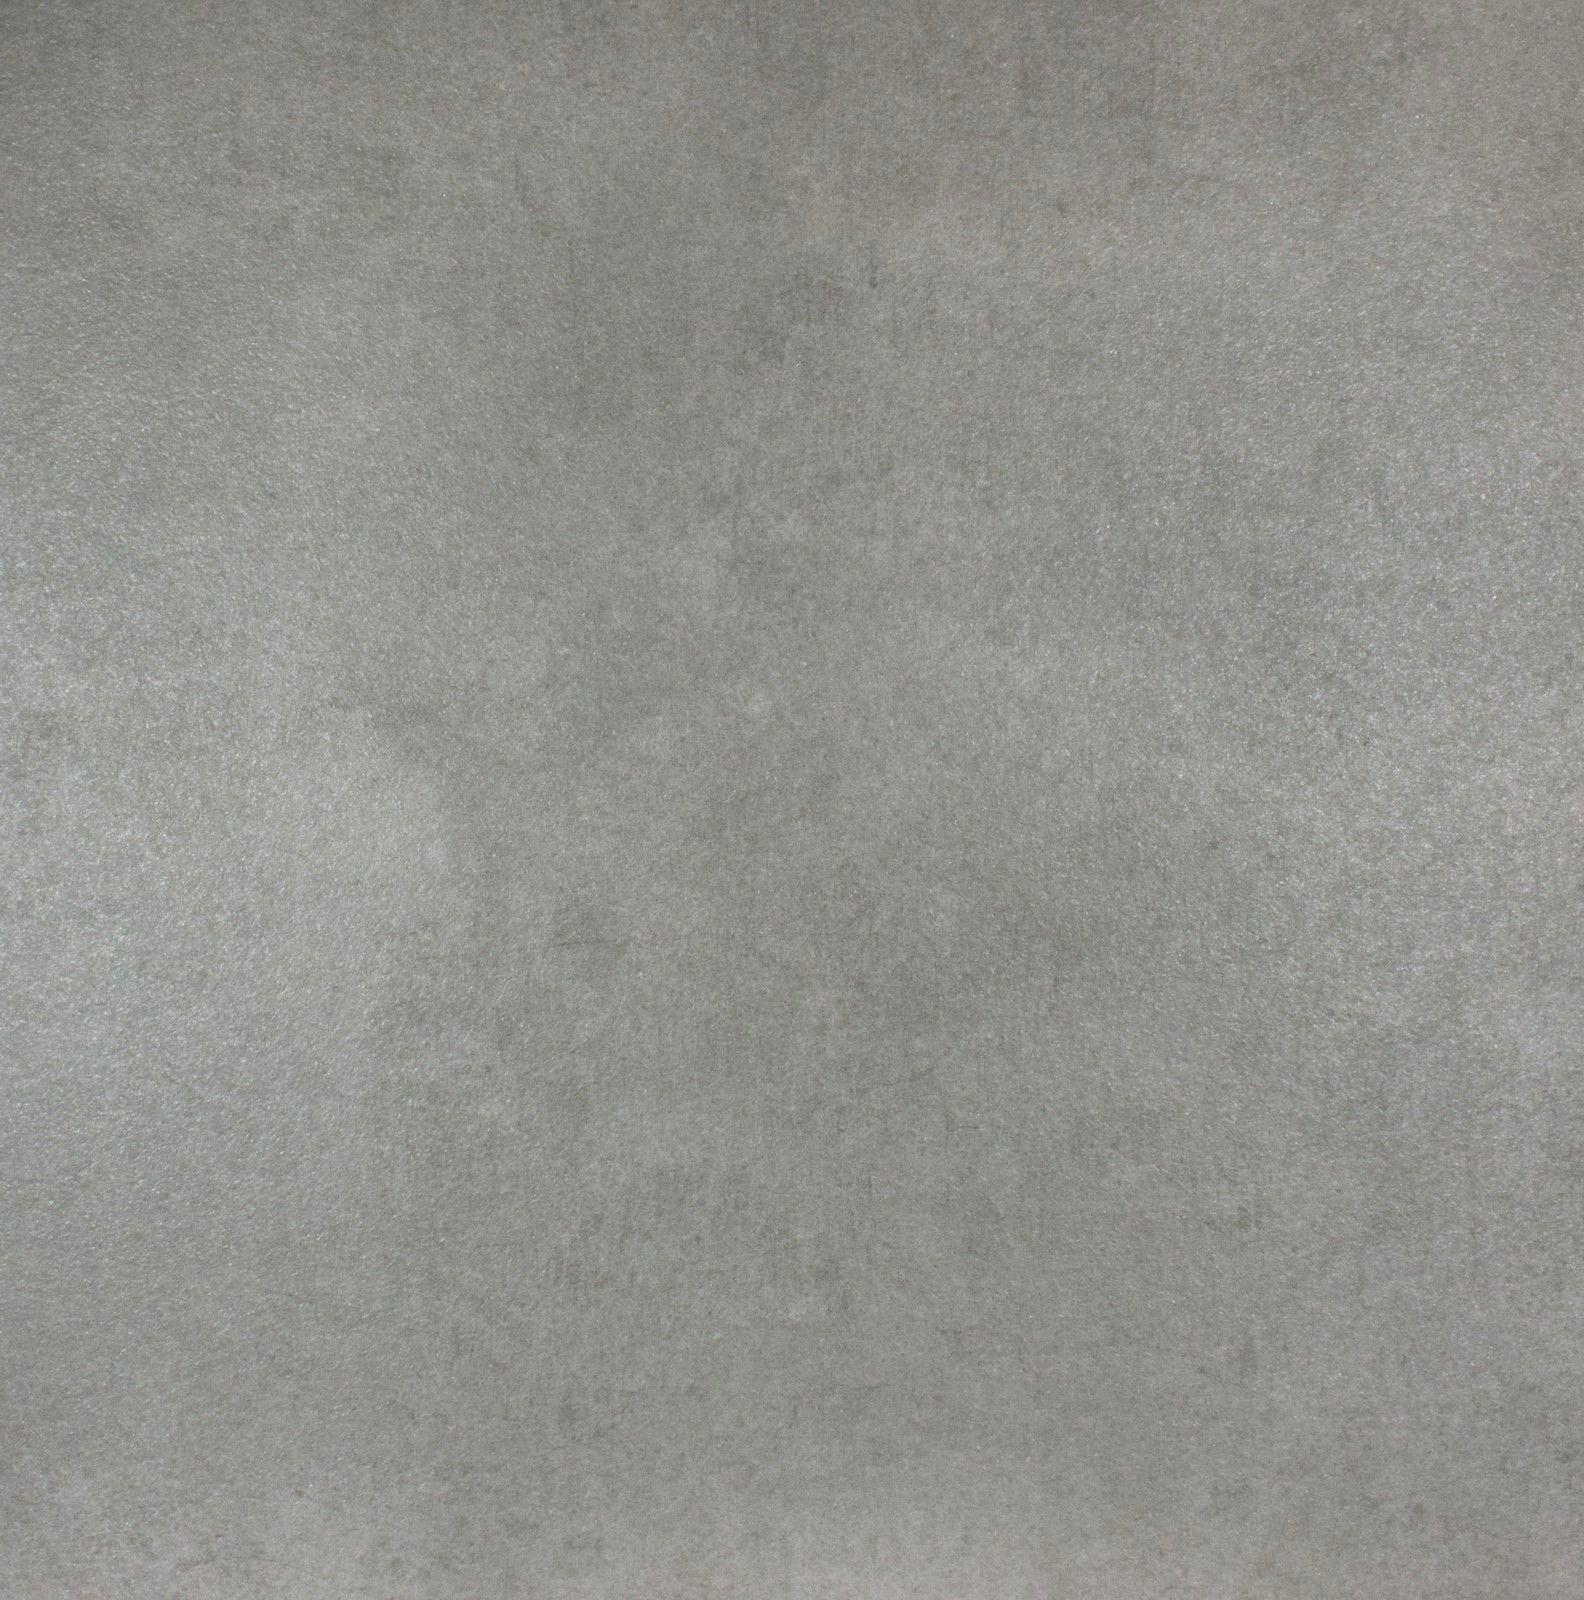 Dunsen grey floor tile grey floor tiles gray floor and gray dunsen grey anti slip floor tile from tile mountain only per tile or per sqm order a free cut sample dispatched today receive your tiles tomorrow dailygadgetfo Images